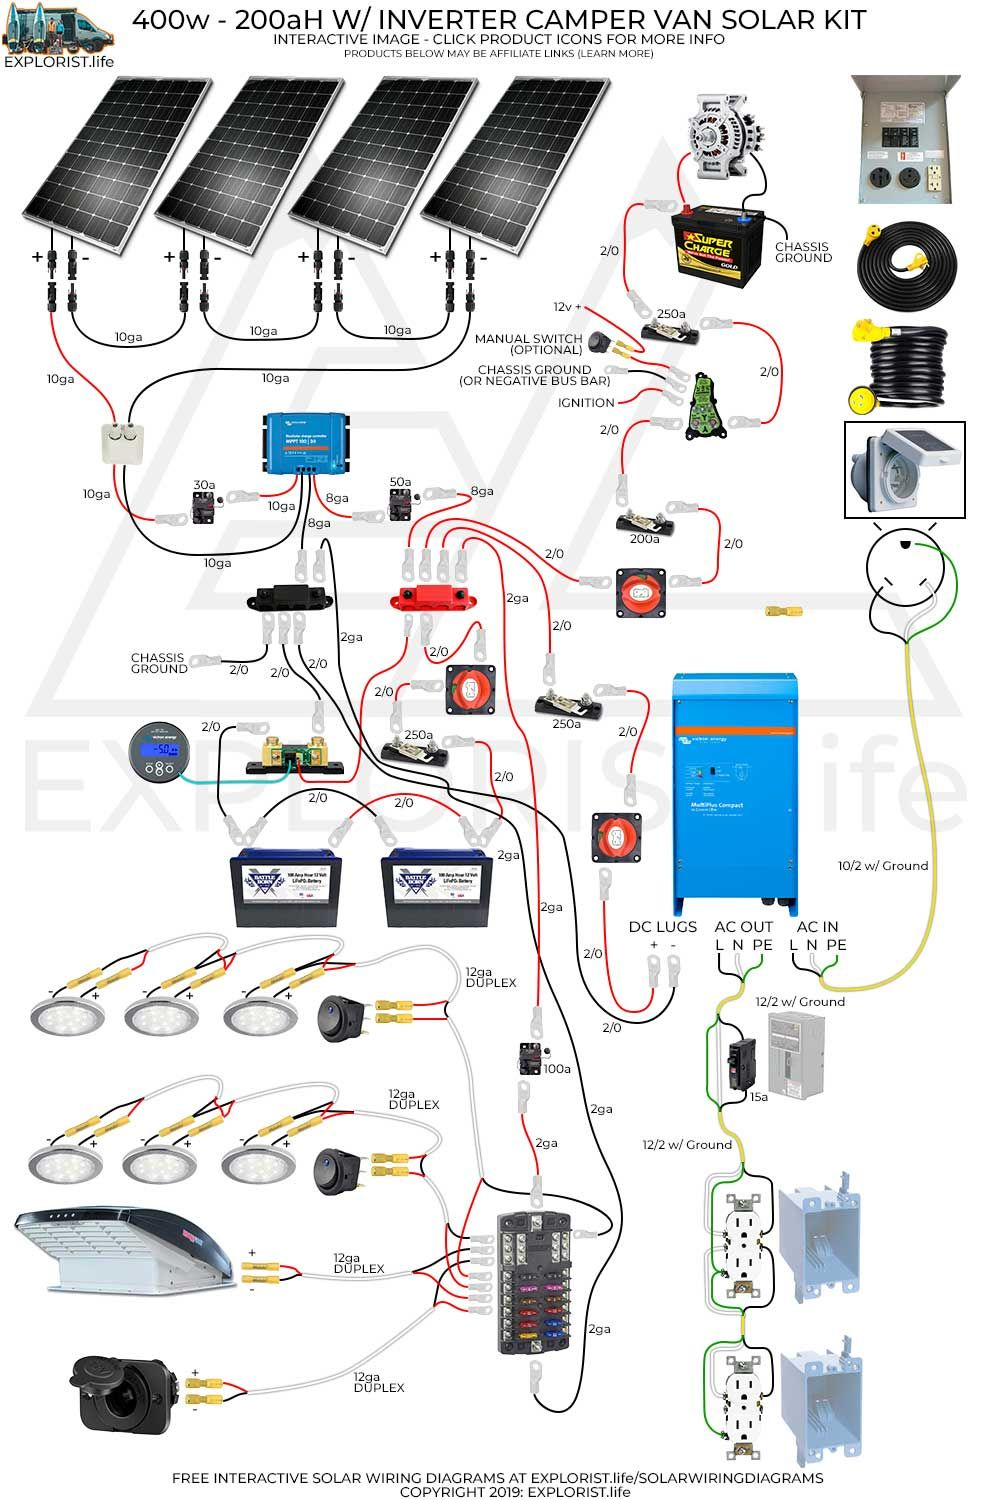 hight resolution of free interactive diy solar wiring diagrams for campers van s rv s explorist life